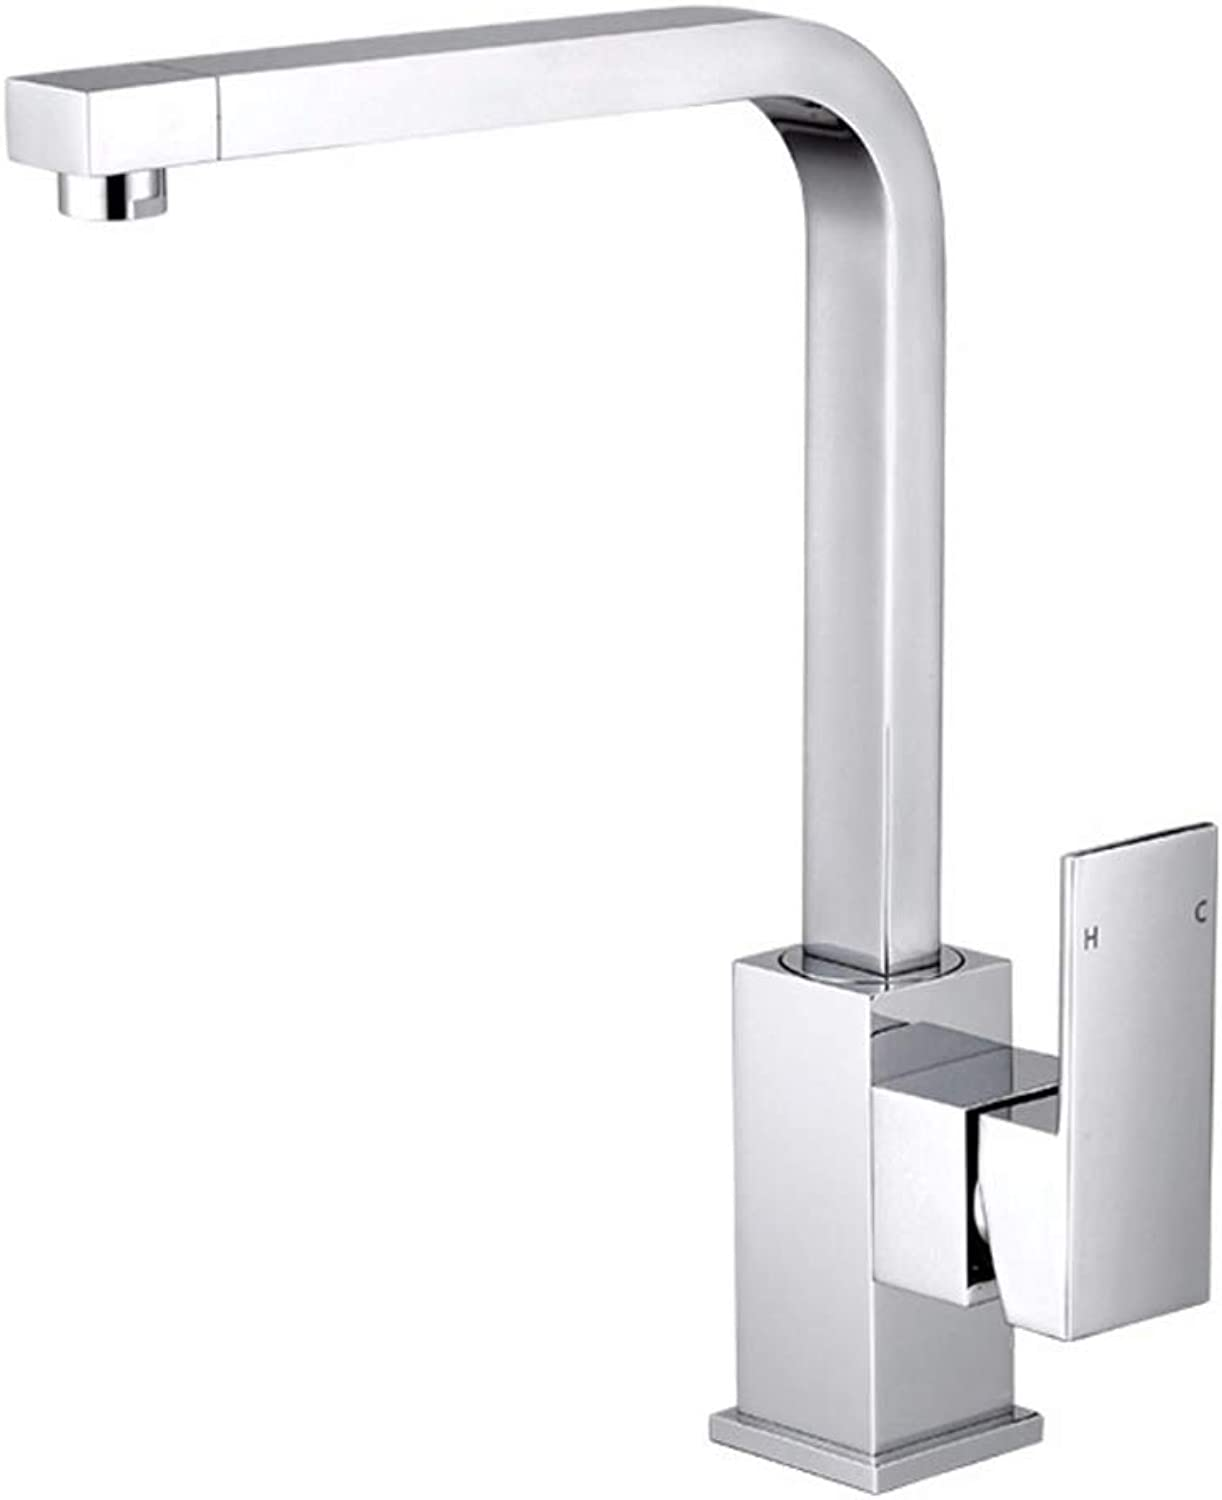 Basin Mixer Tap Bath Fixtures Wash Basinsinkkitchen Single Hole Single Handle Hot and Cold Square redary Basin Faucet